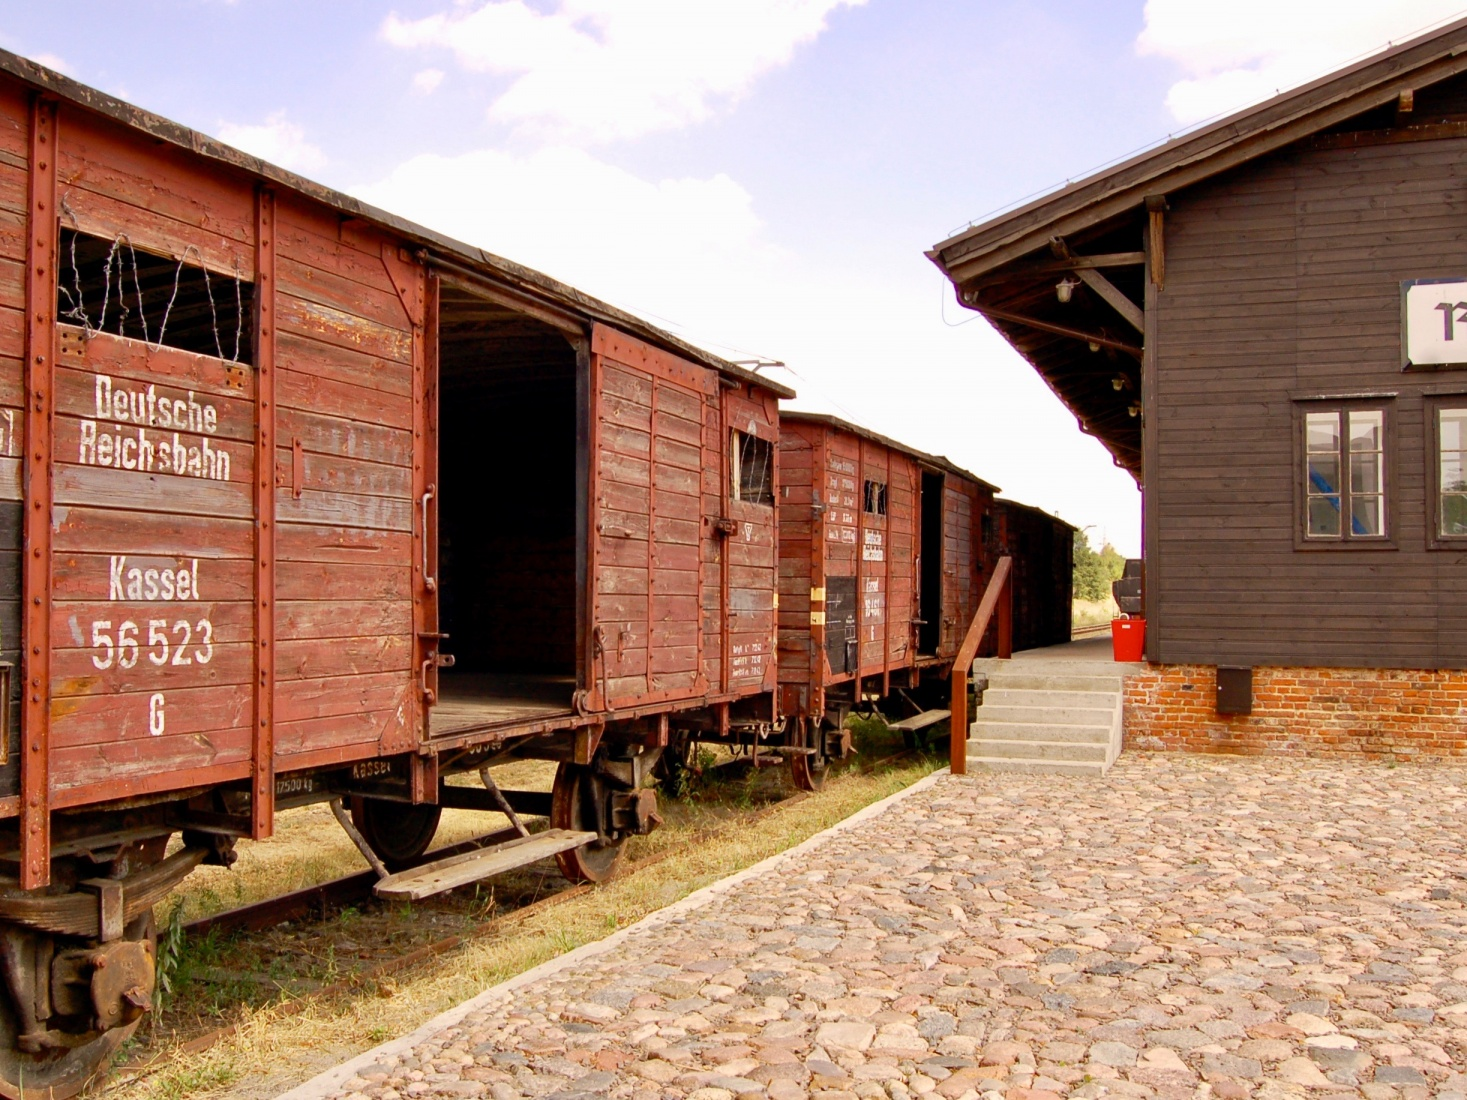 Cattle cars used to move Jewish victims to extermination camps when the ghettos got too full, as they did in Łódź, Poland.